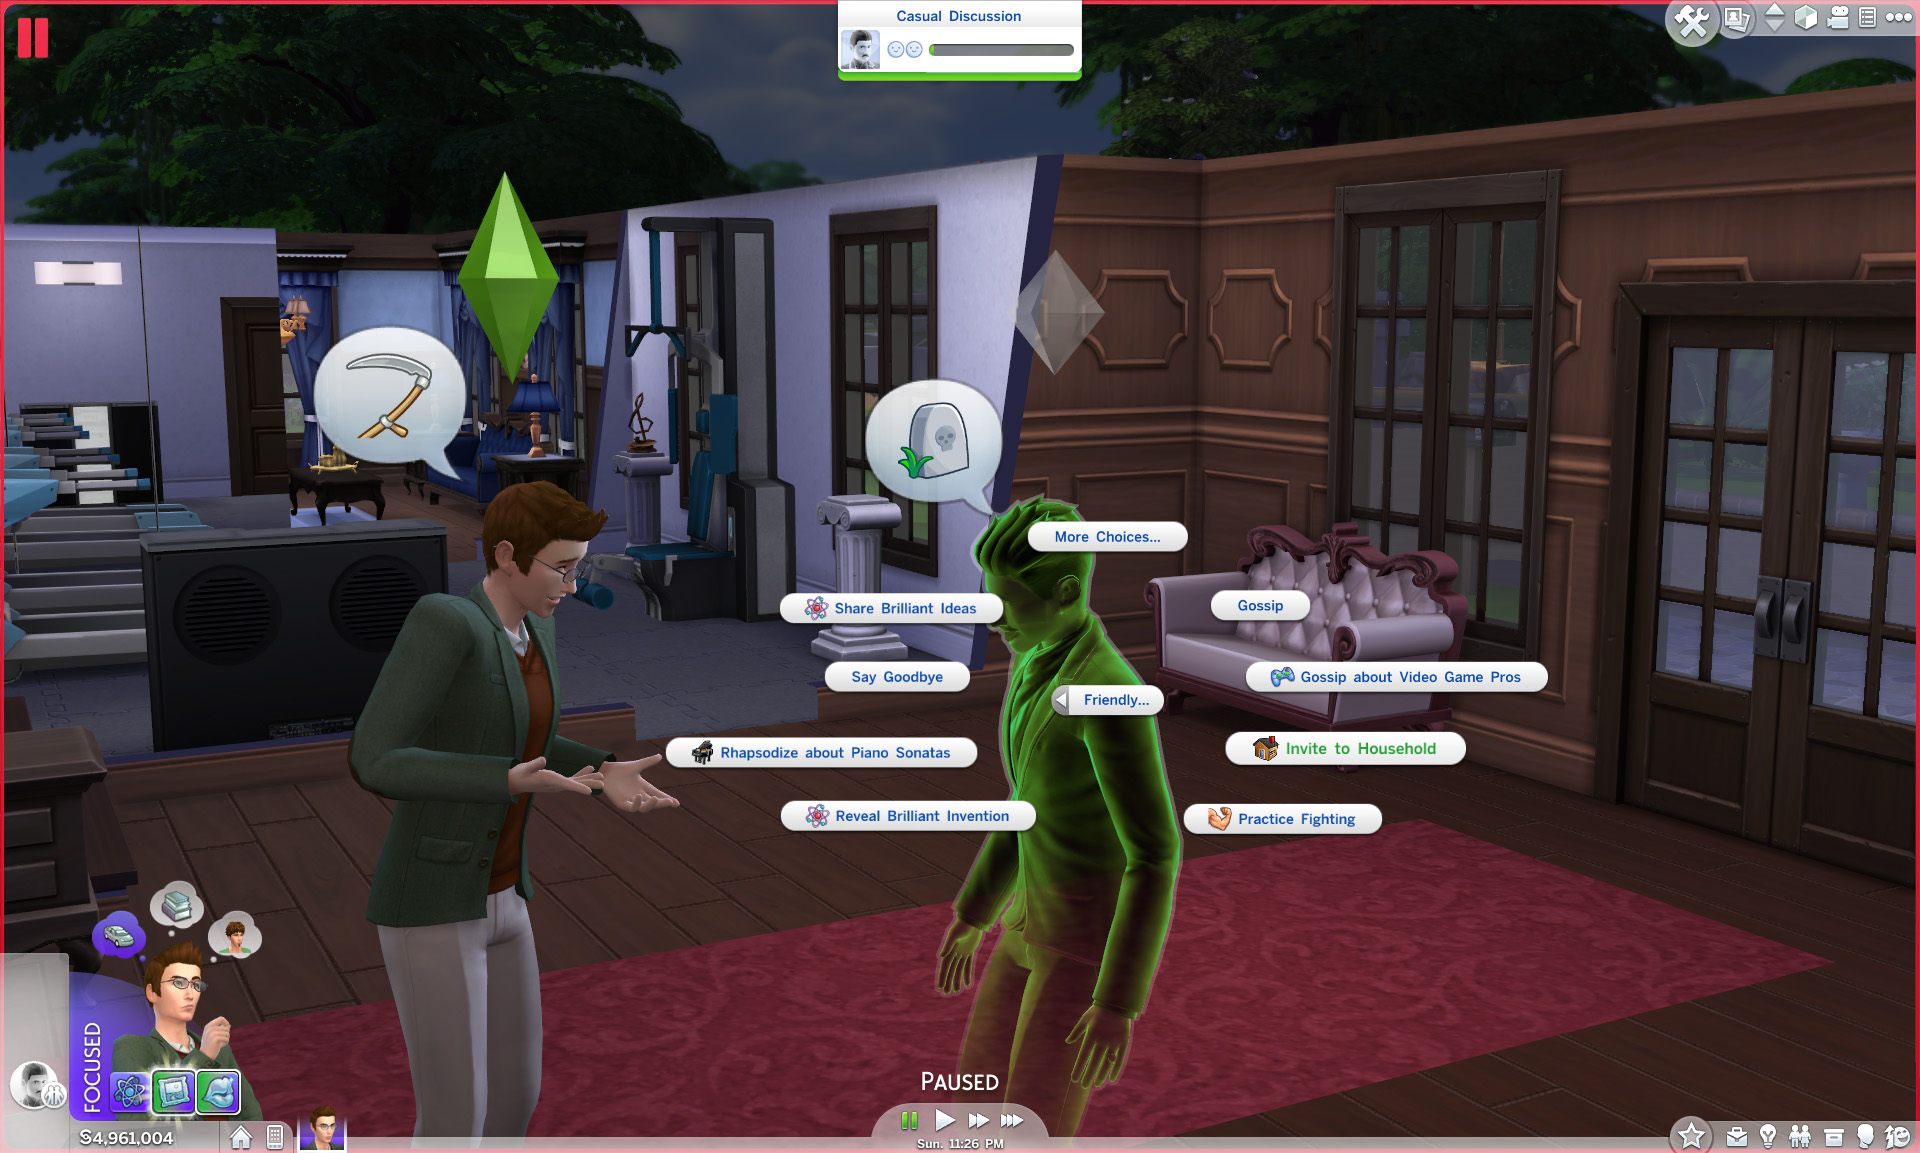 Mod The Sims - Easy Invite Ghost to Household